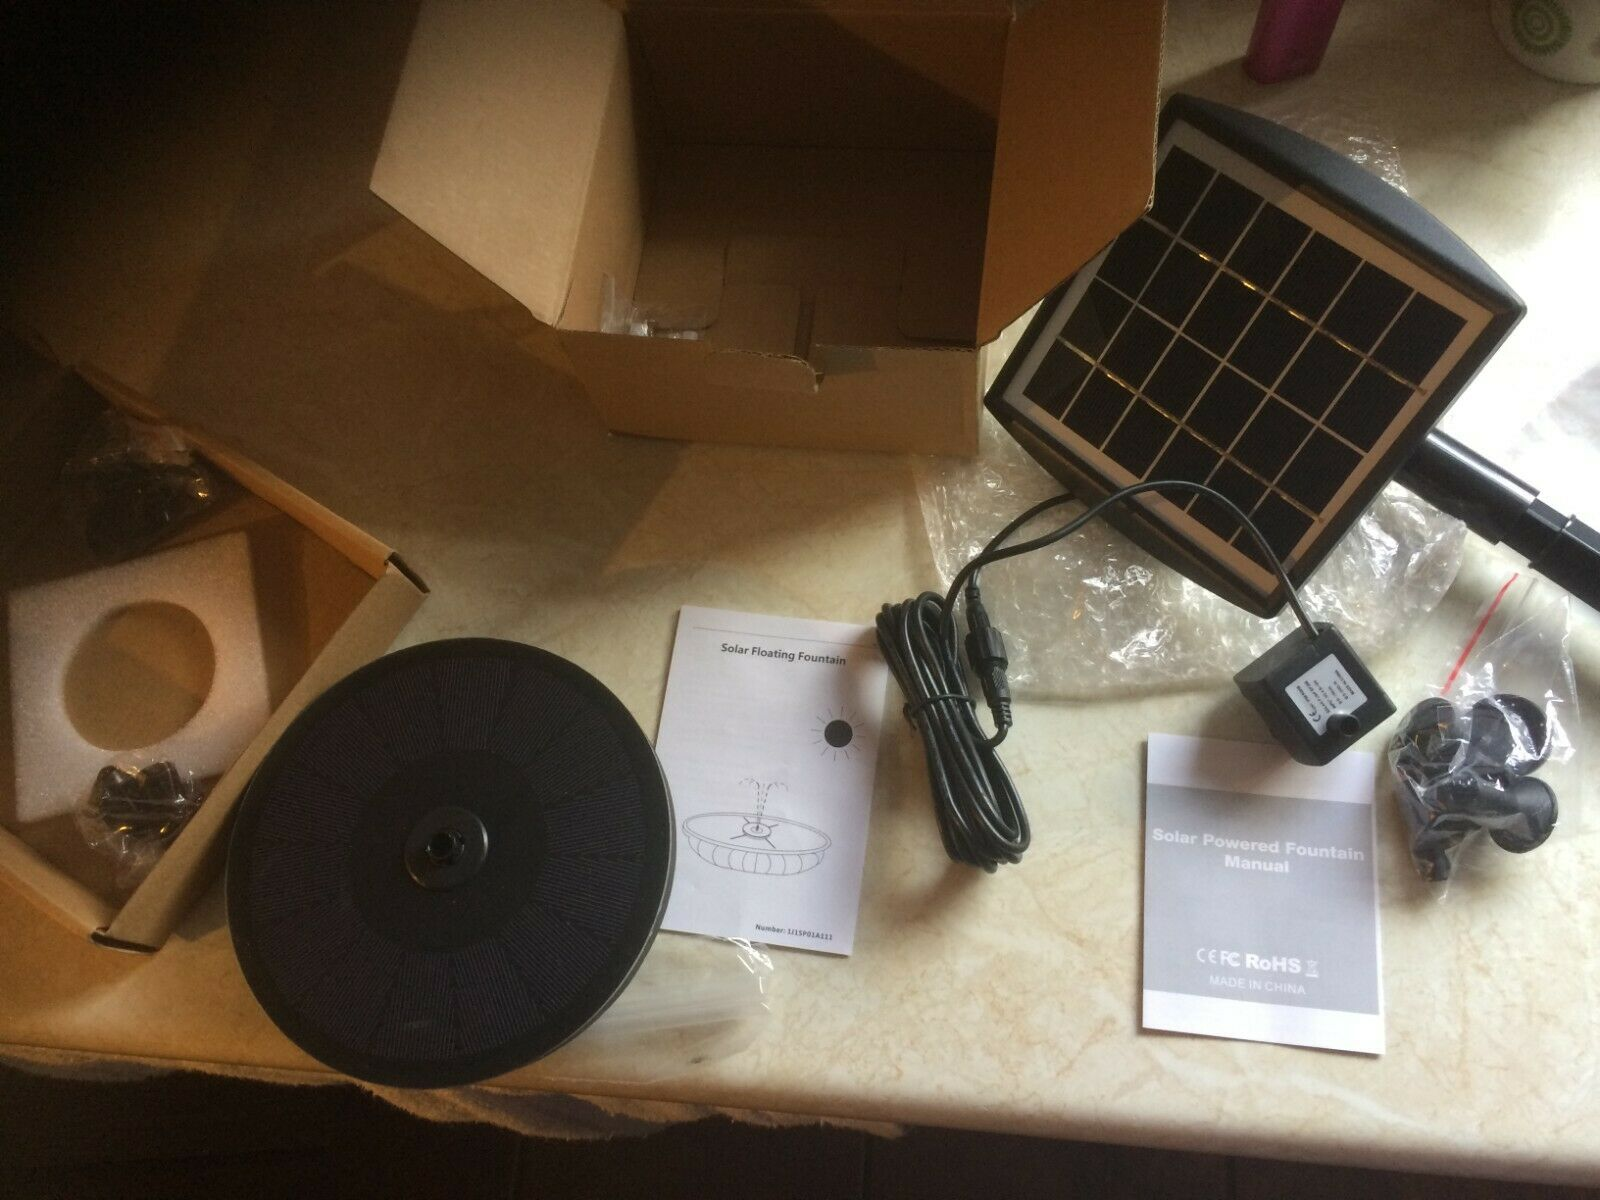 2 Solar Pump Water feature Fountains, new, price for both not each, job lot